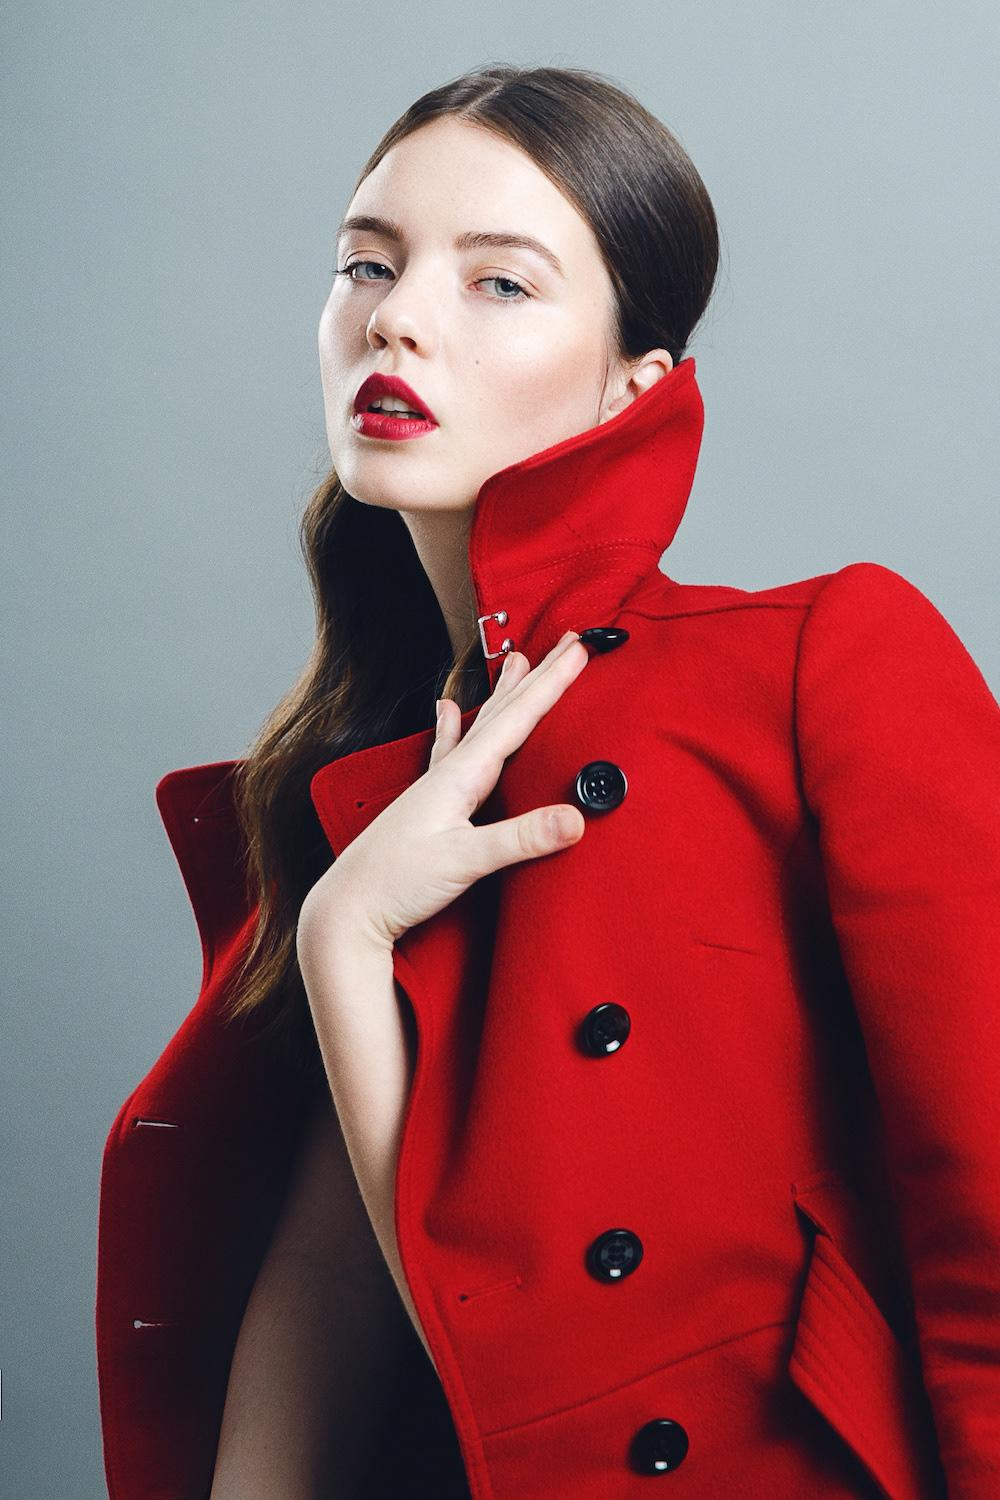 Red coat is a great combination with red lipstick to create bold look for spring-summer season